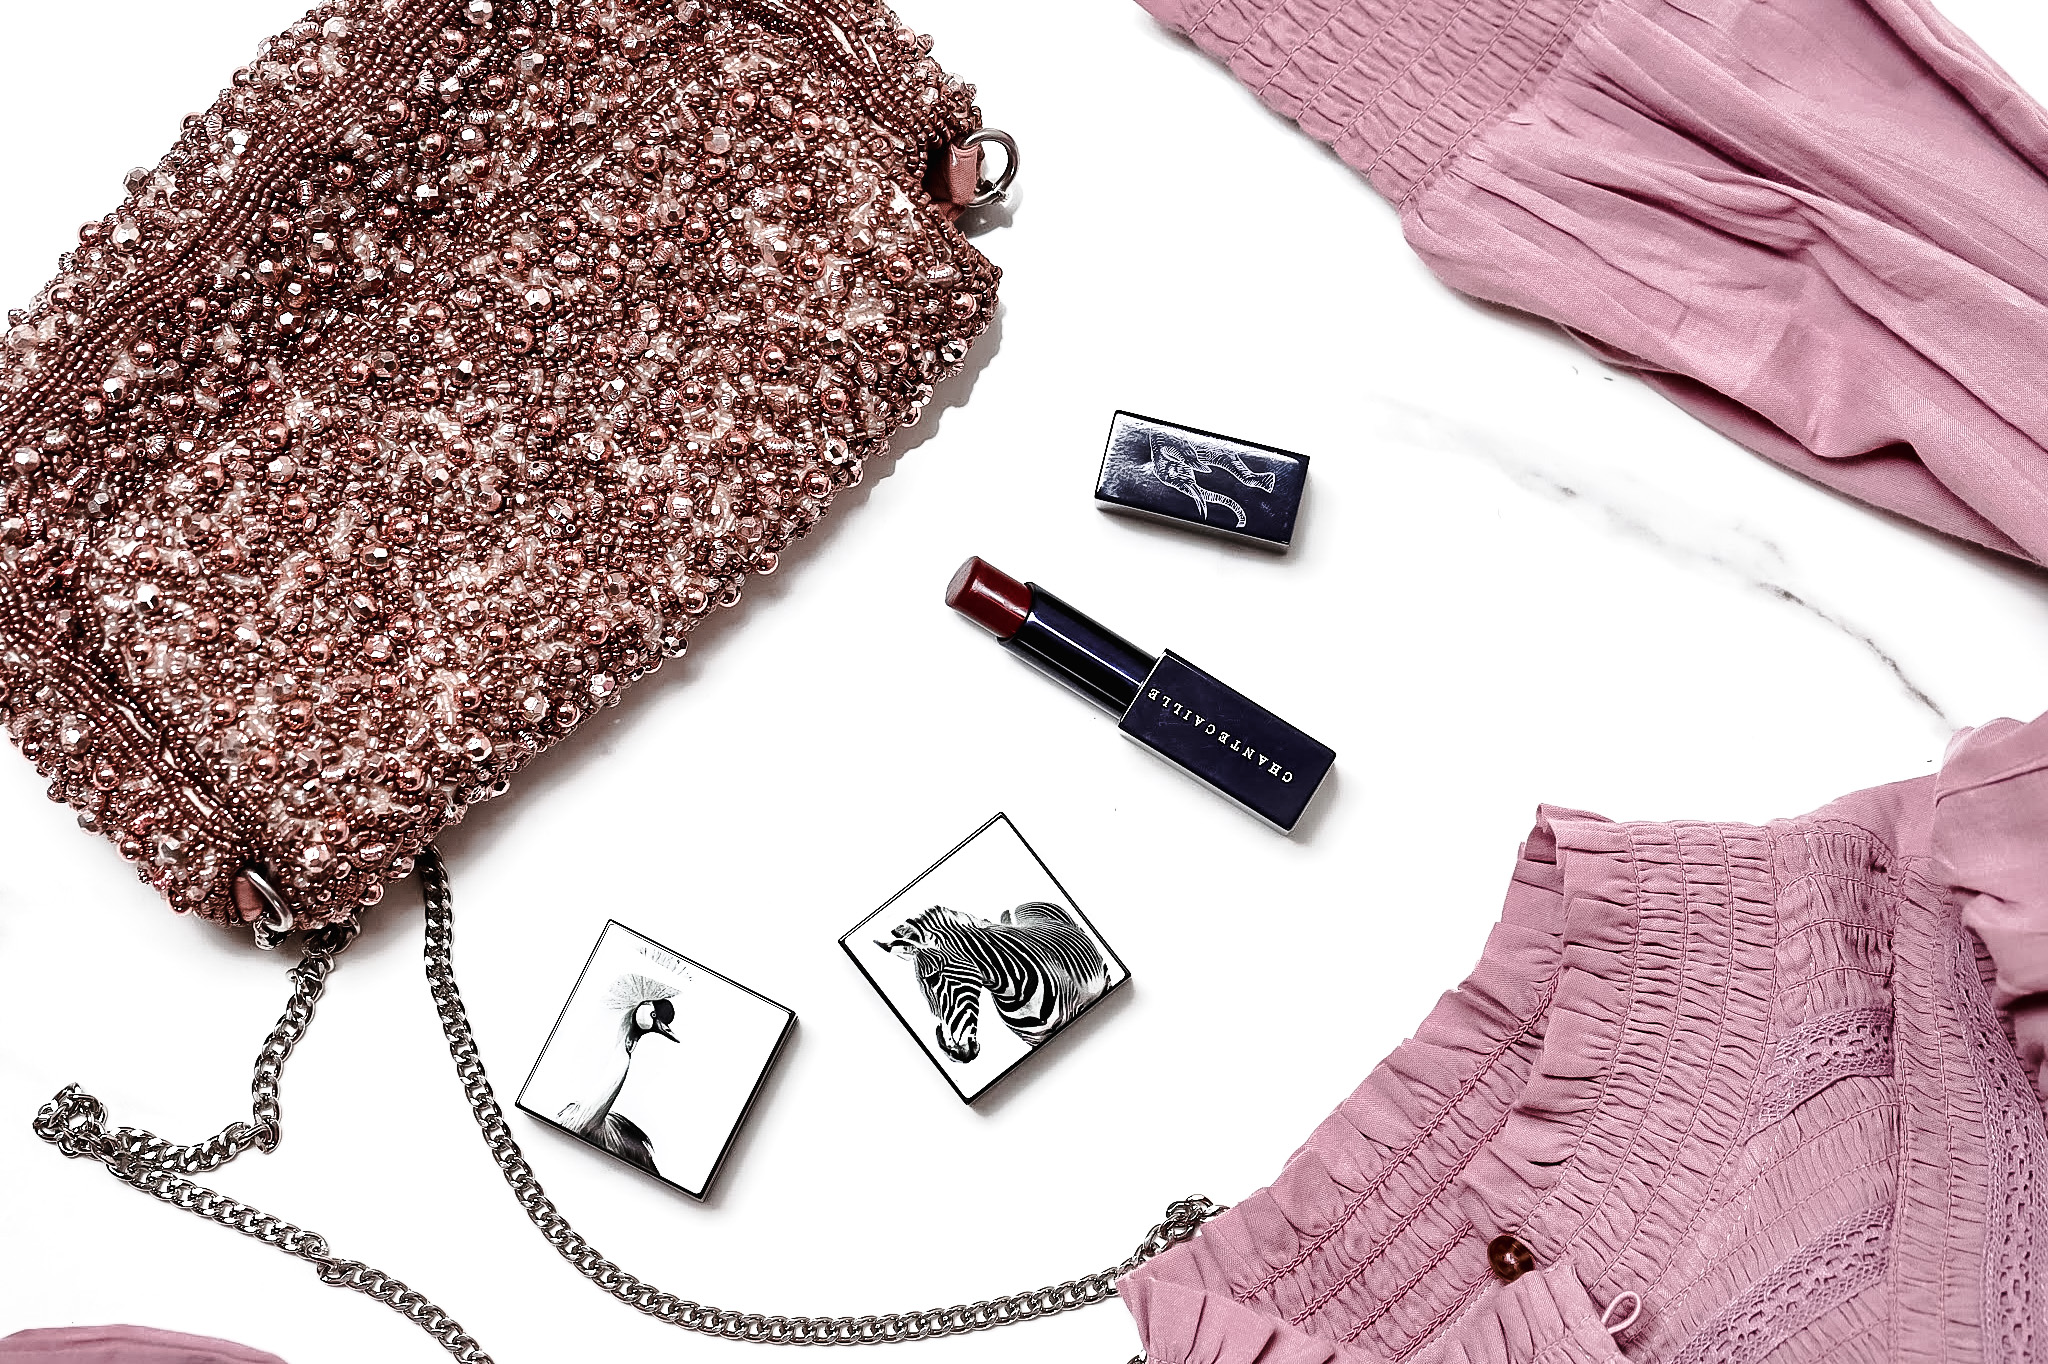 Chantecaille Luminescent Eye Shade Zebre Rose Gold Grue Bordeaux Lip Veil Elderberry